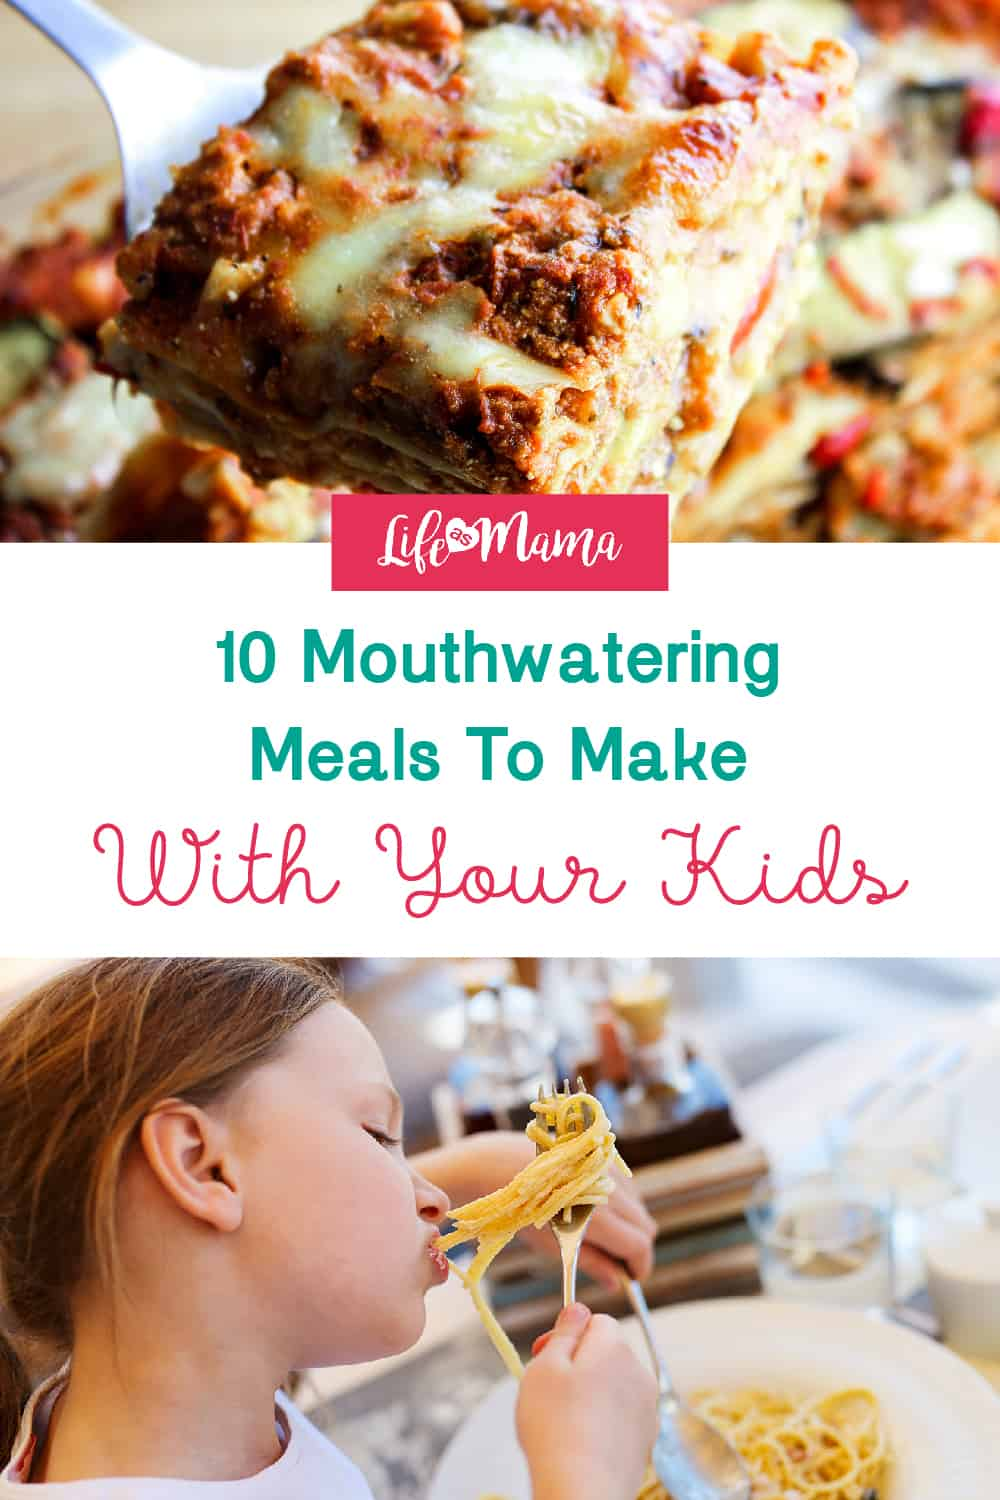 recipes with kids